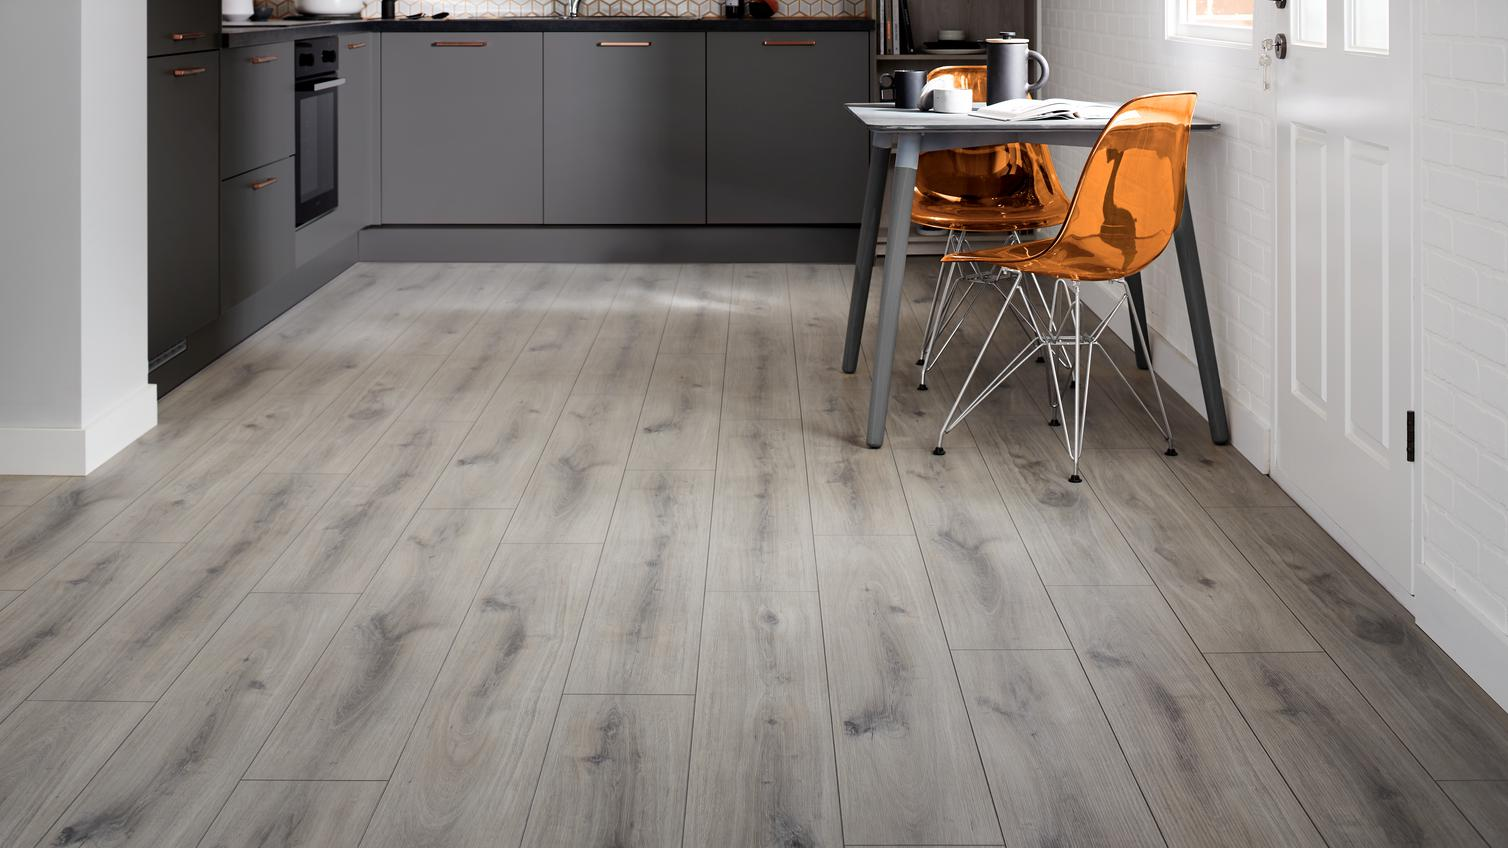 Benefits Of Using Stone Look Floor Products